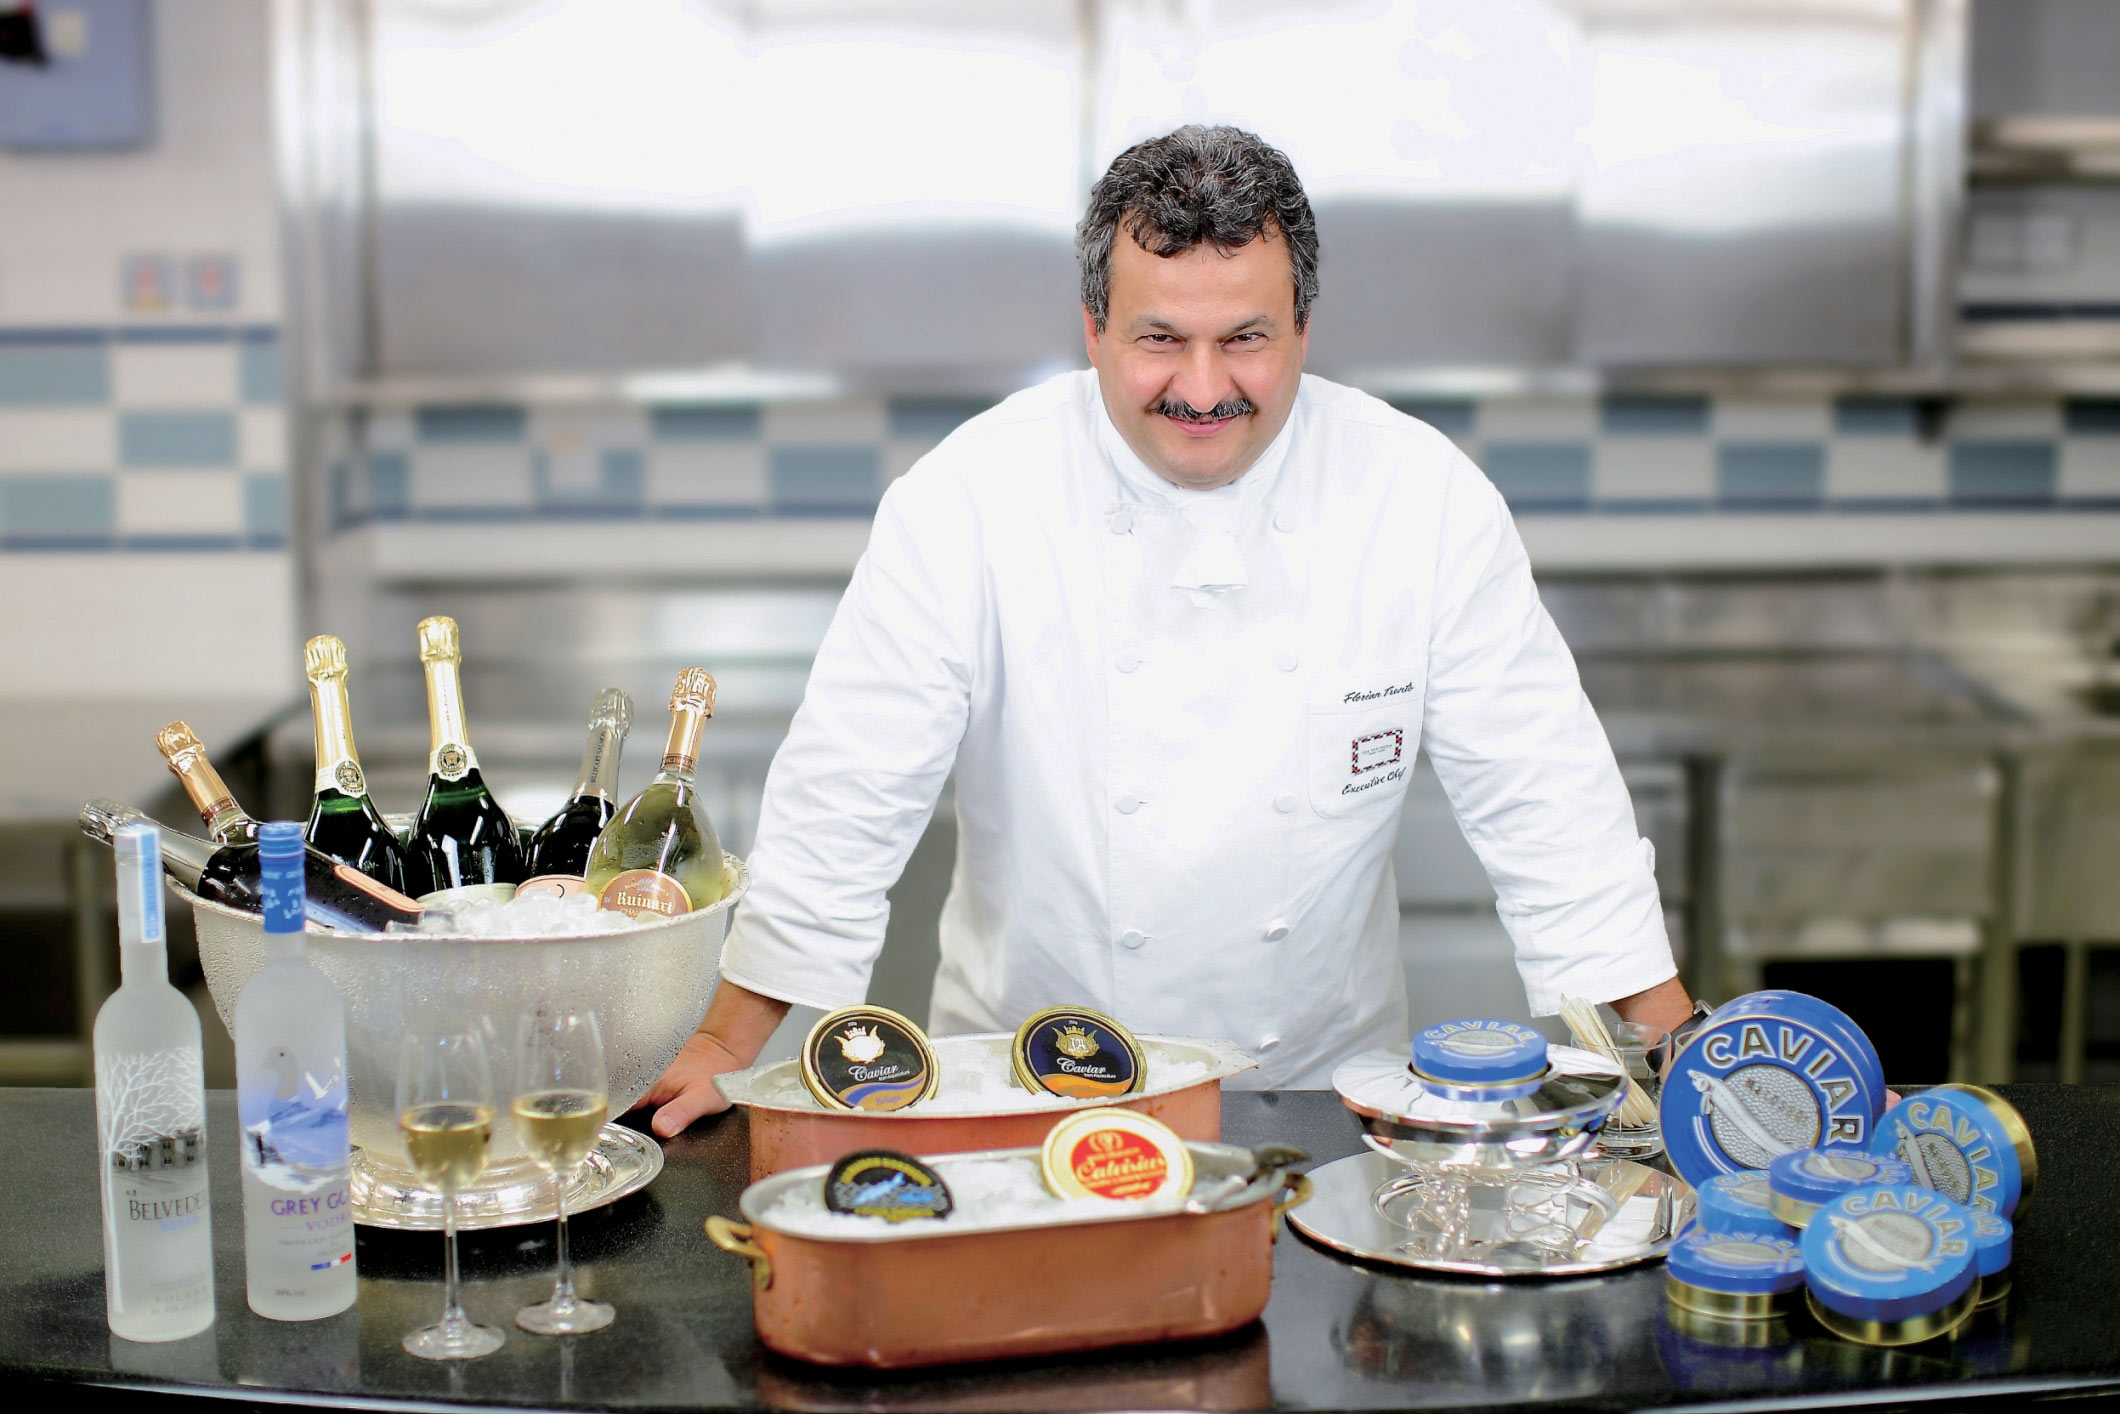 Mr Florian Trento, Group Executive Chef, The Peninsula Hotels